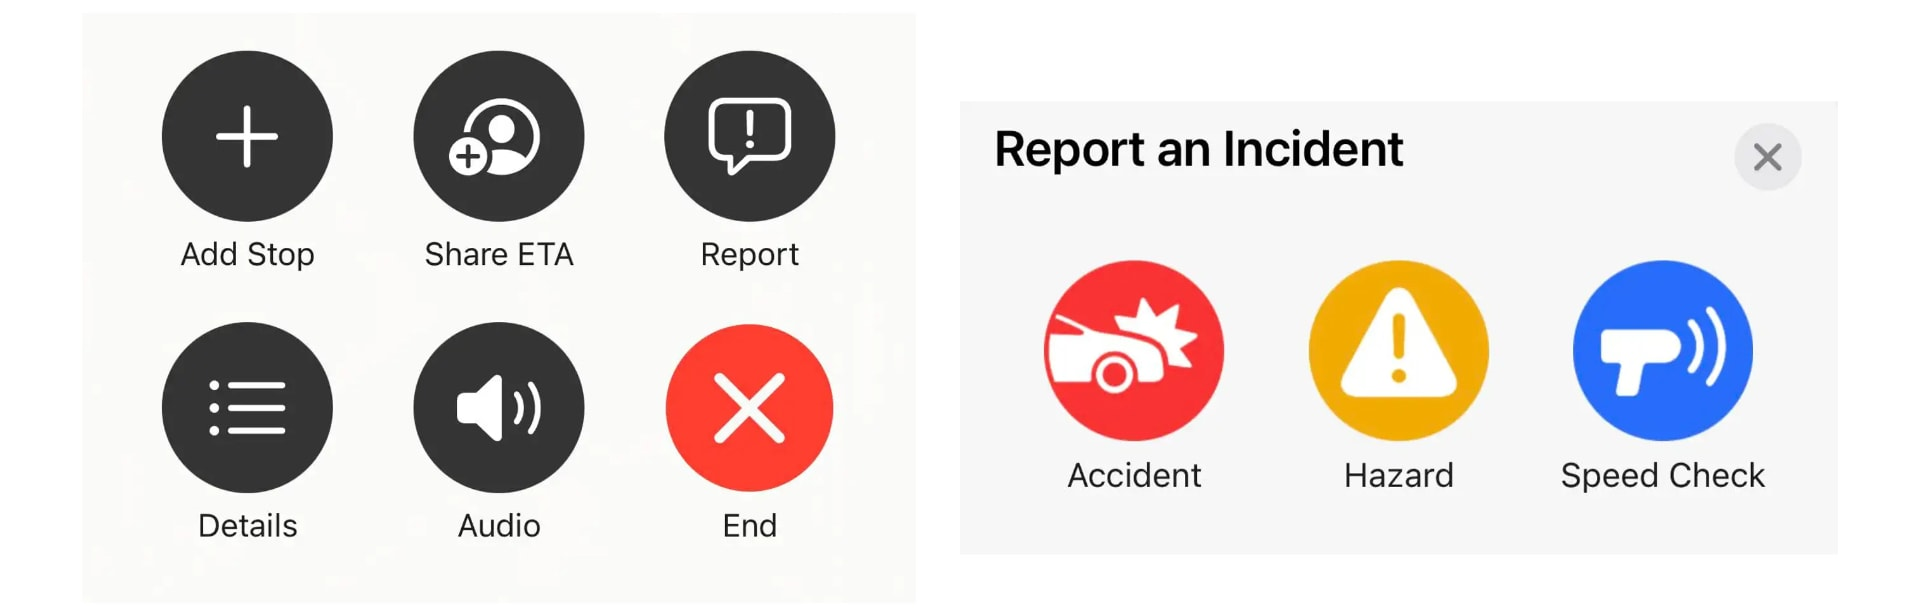 report incidents in Apple Maps